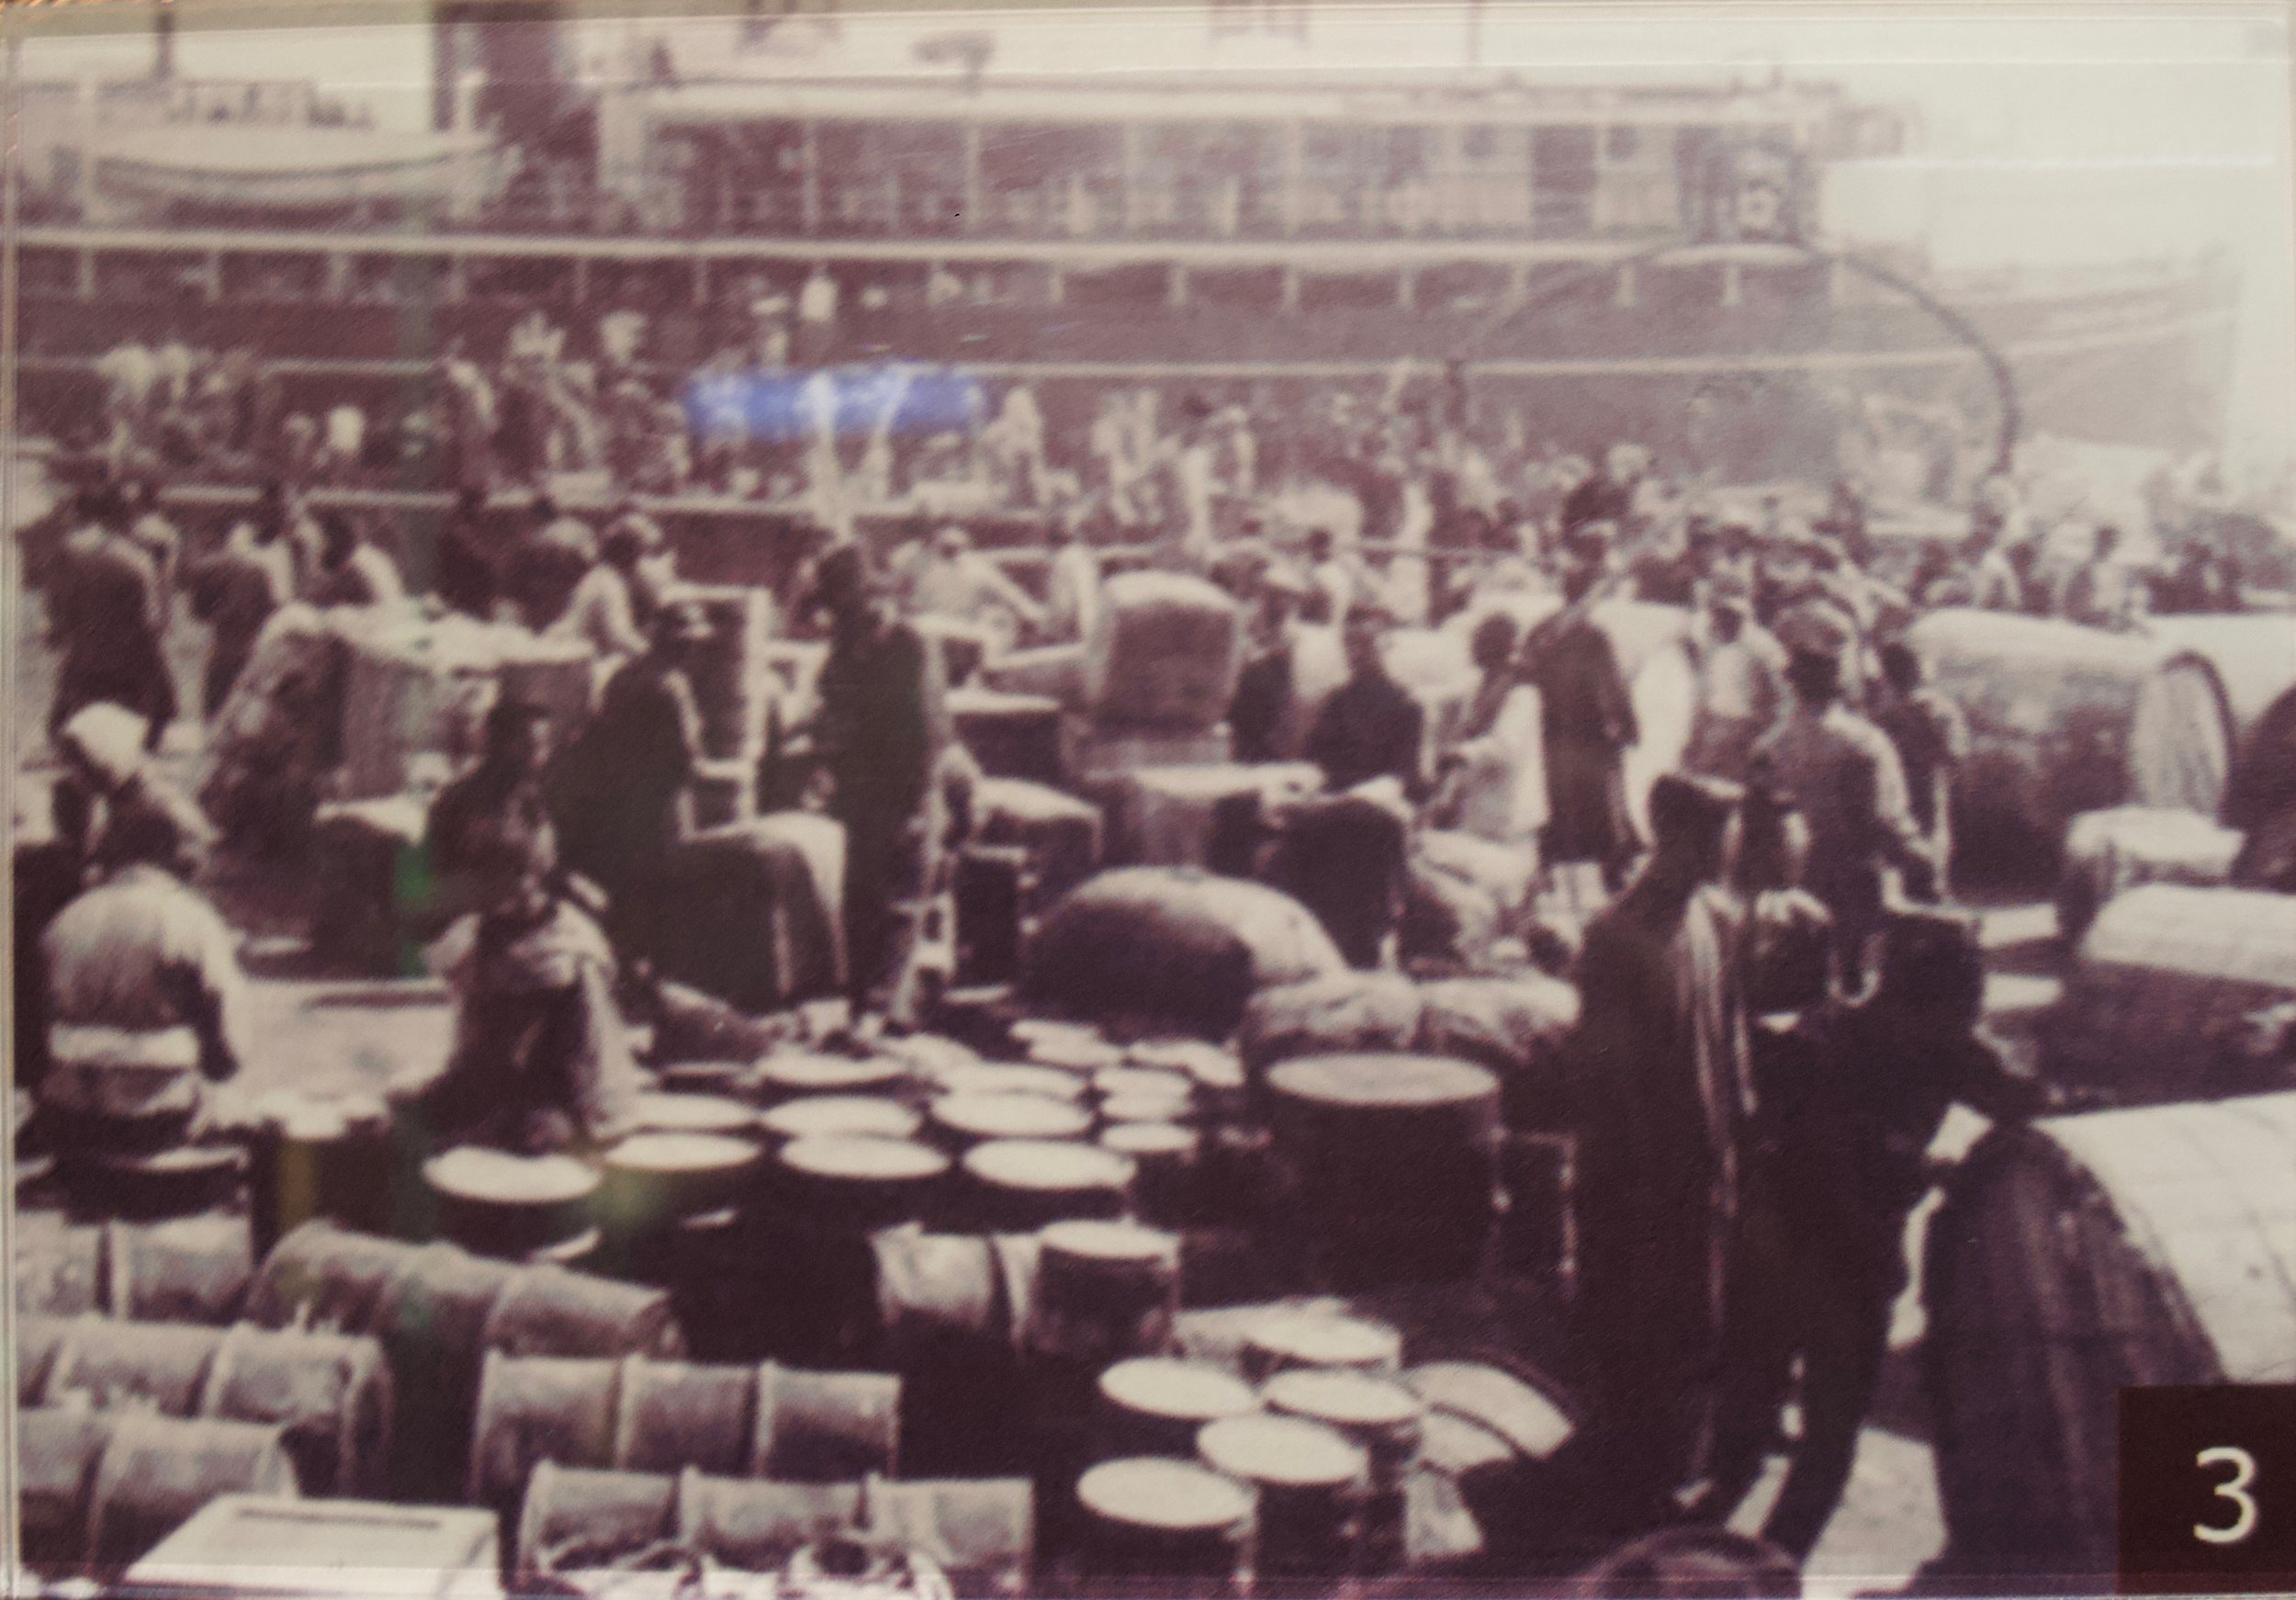 Refugees arriving at the port of Shanghai. [Shanghai Jewish Refugees Museum]